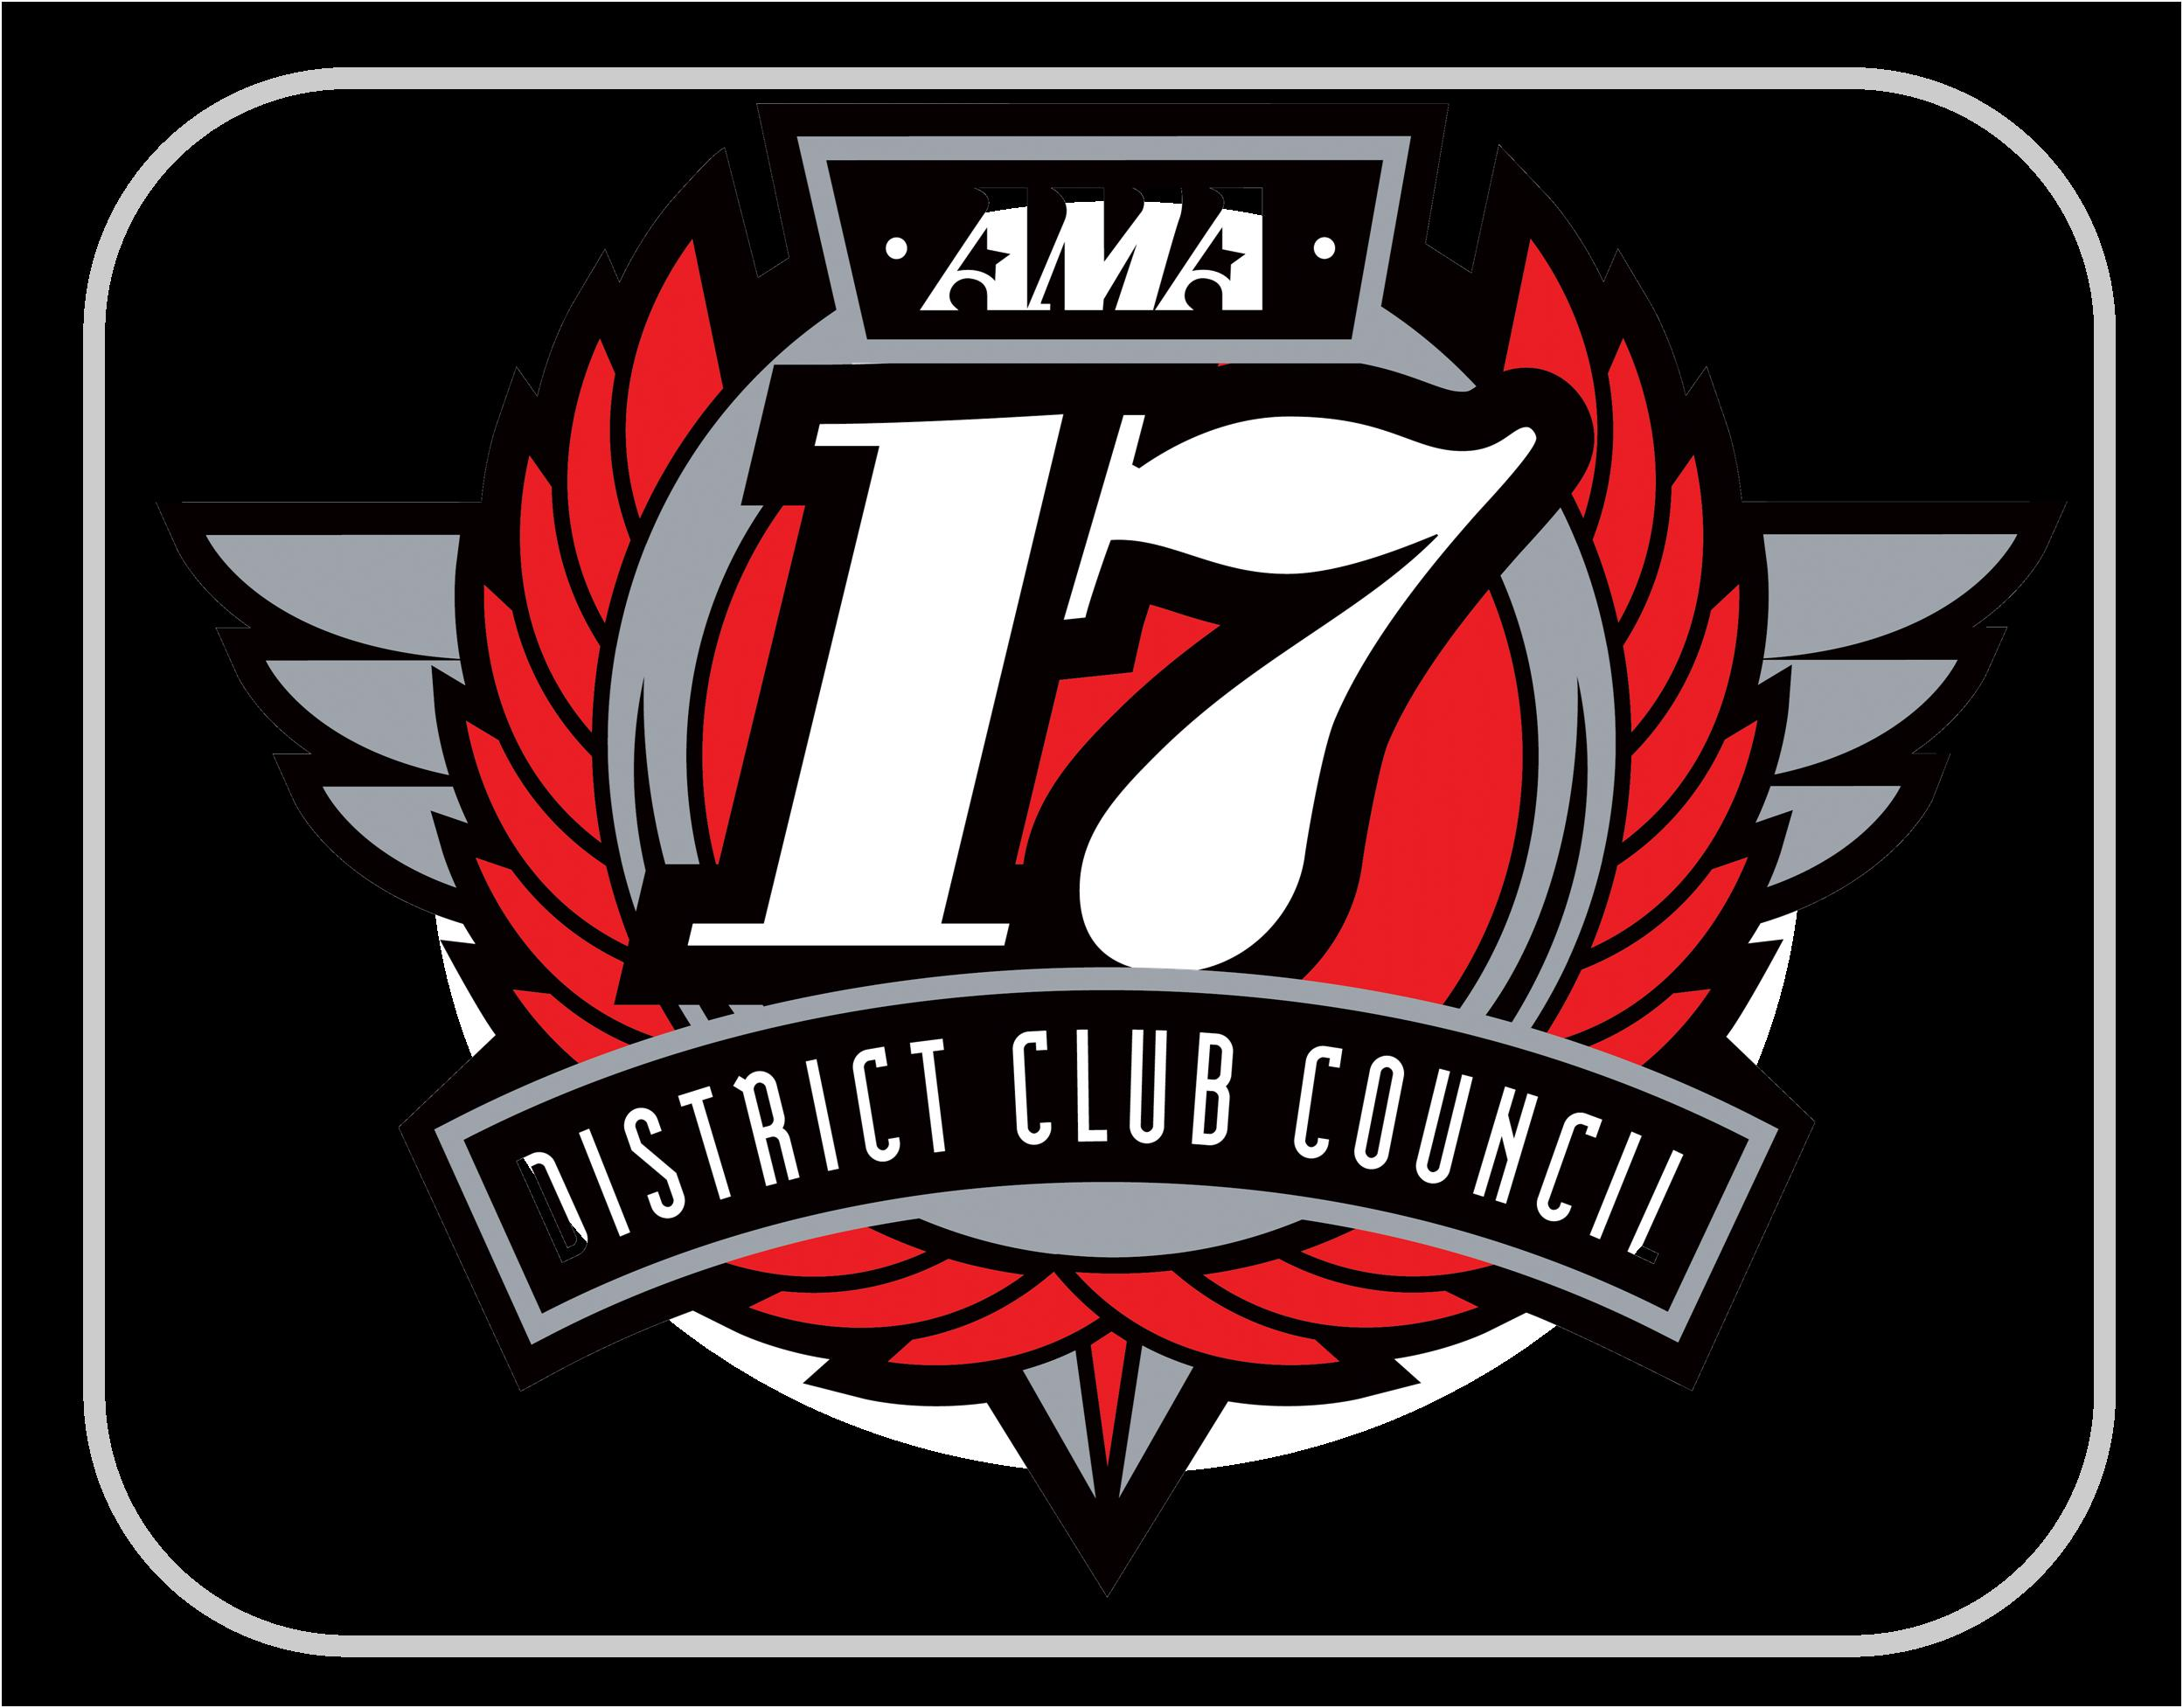 Welcome to AMA District 17 Club Council Official Web Site, Motorcycles,  Motocross, Road, Dirt Track, HillClimb, Mini Bikes, ATV's Quads.